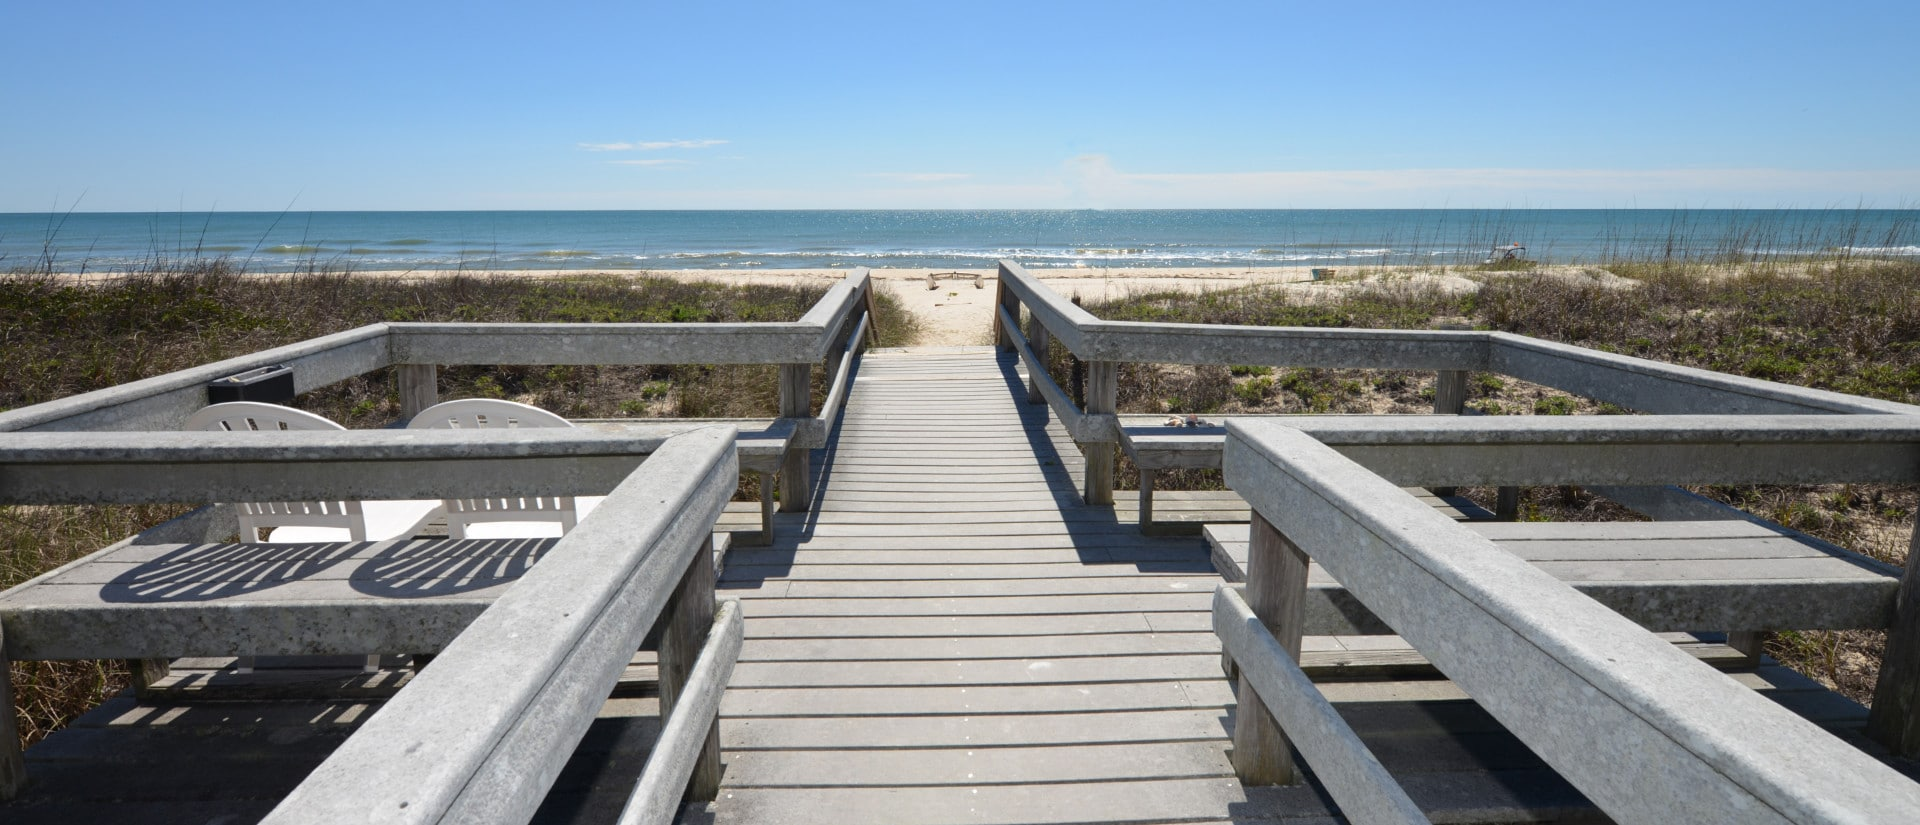 places to stay on st george island - beachfront